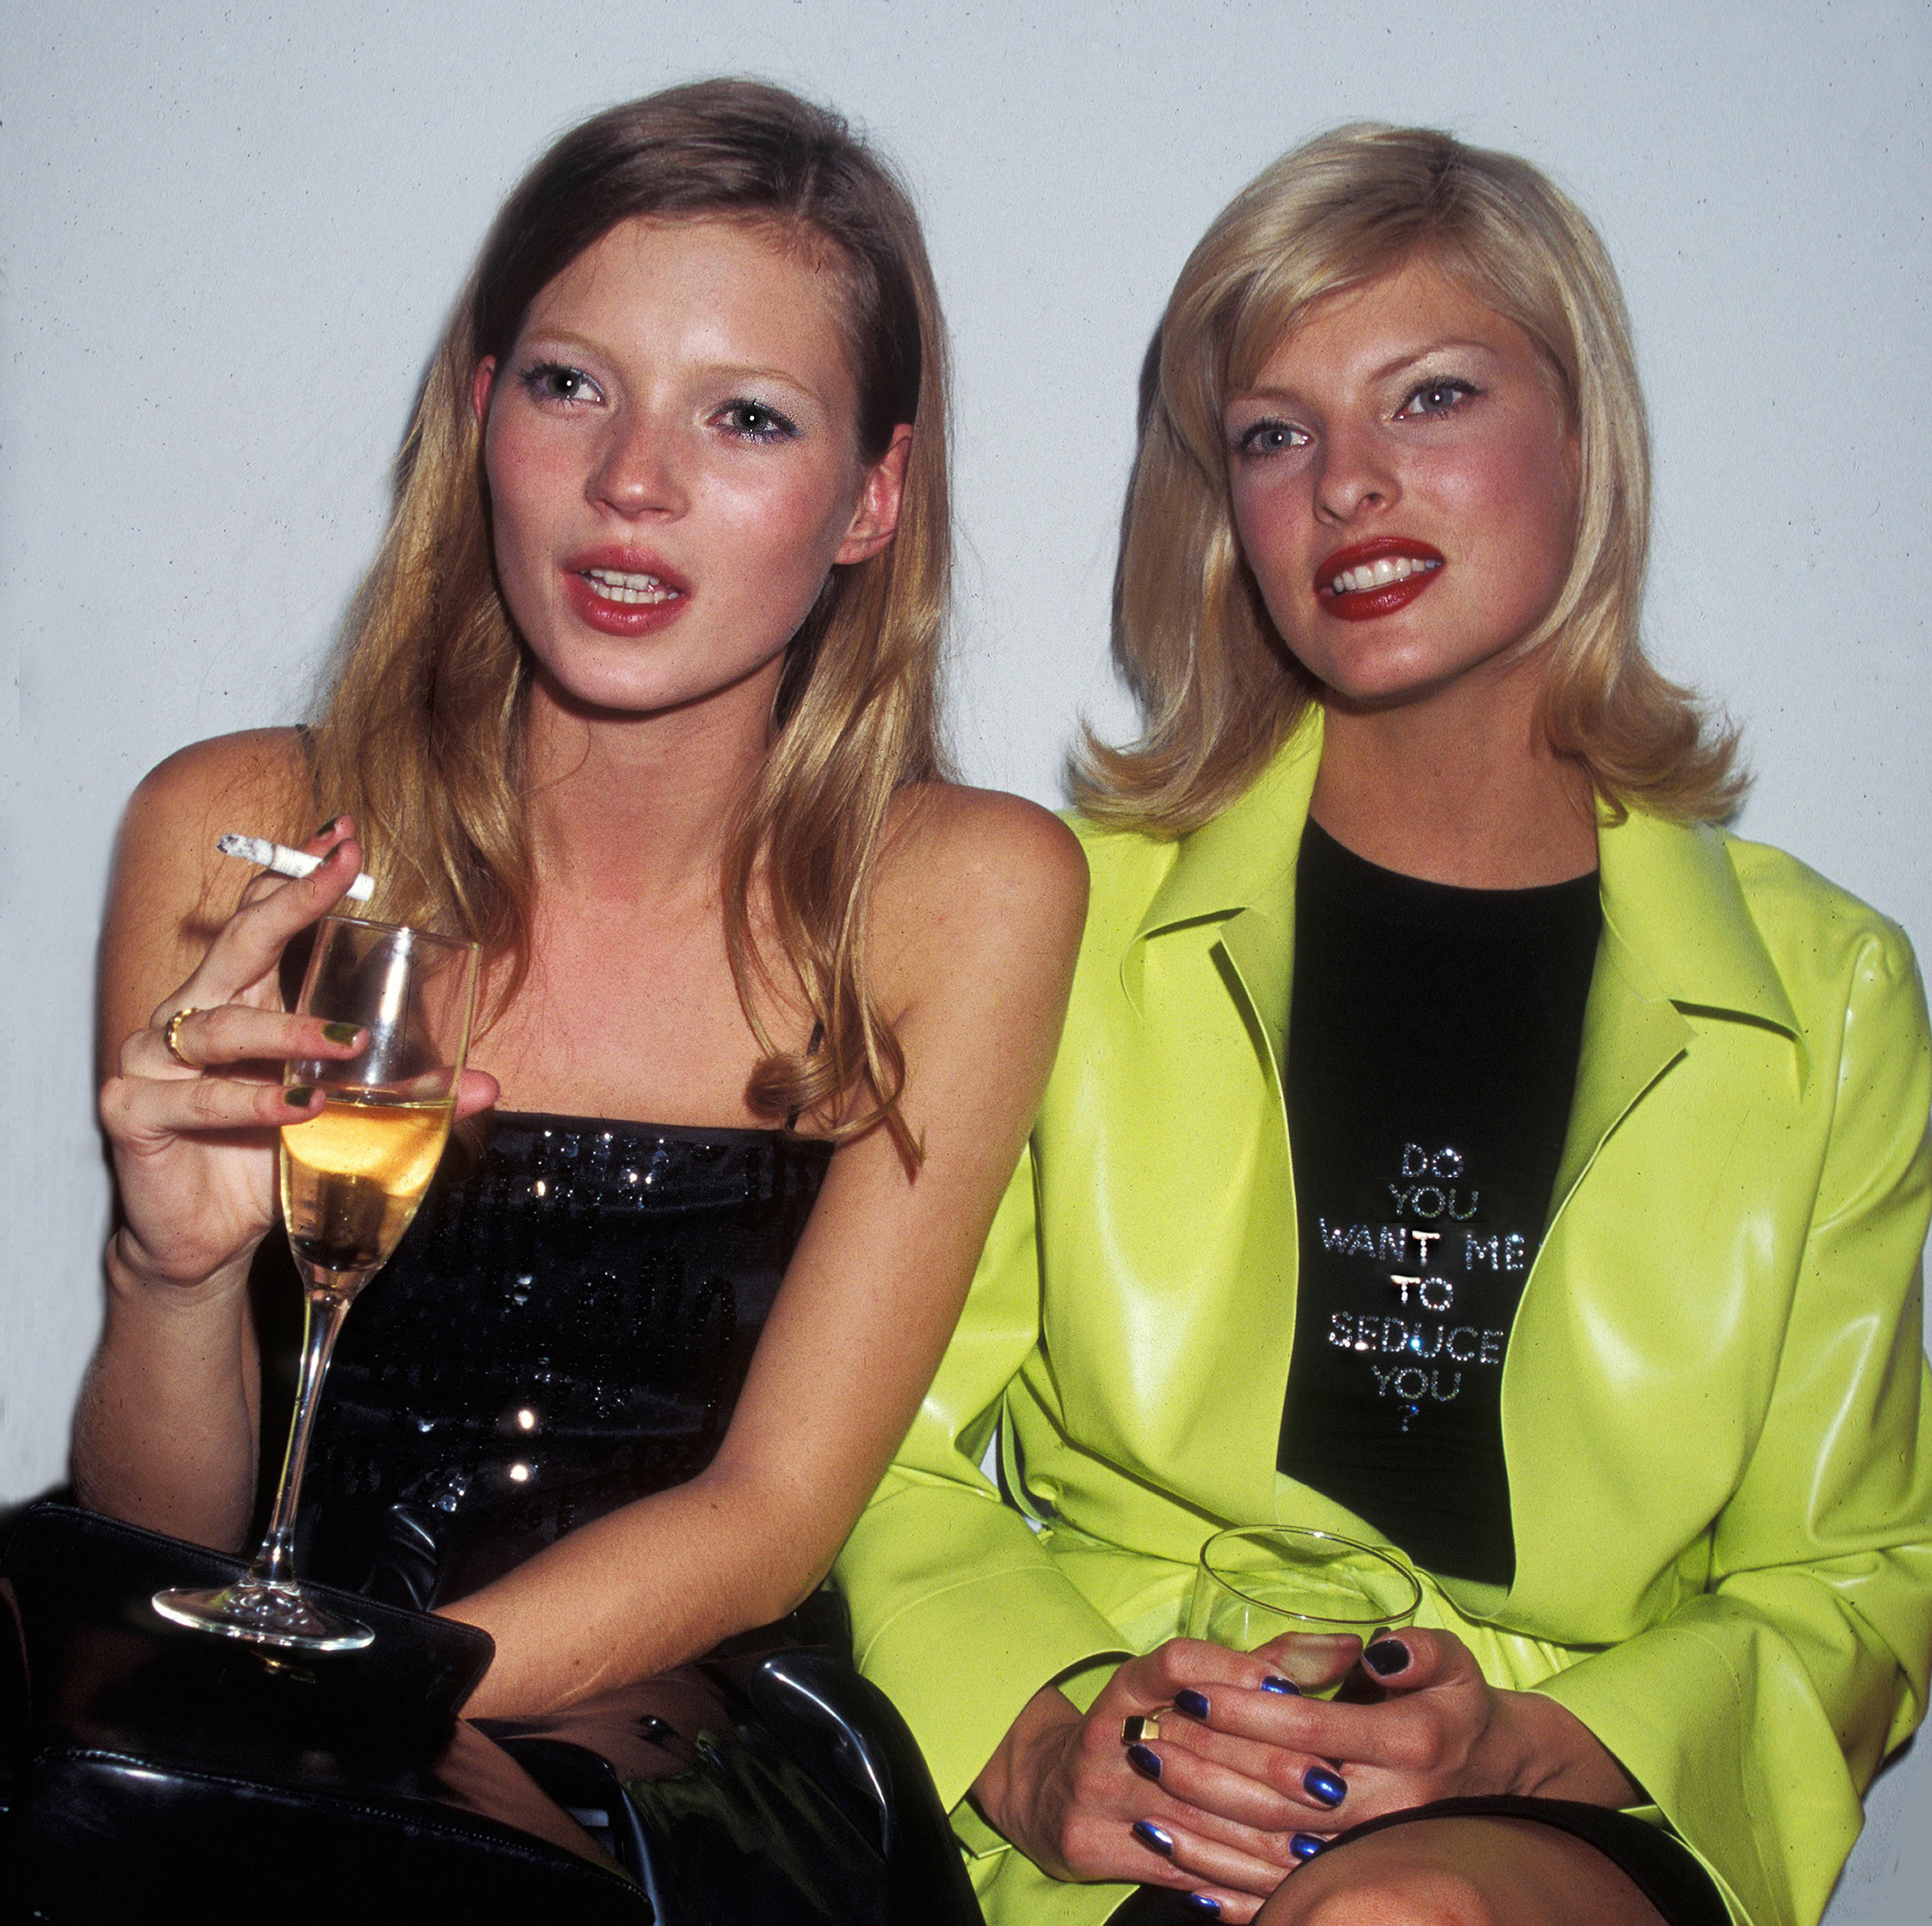 Models Kate Moss and Linda Evangelista attend an Allure Magazine party in a Soho loft, New York, New York, 1994.